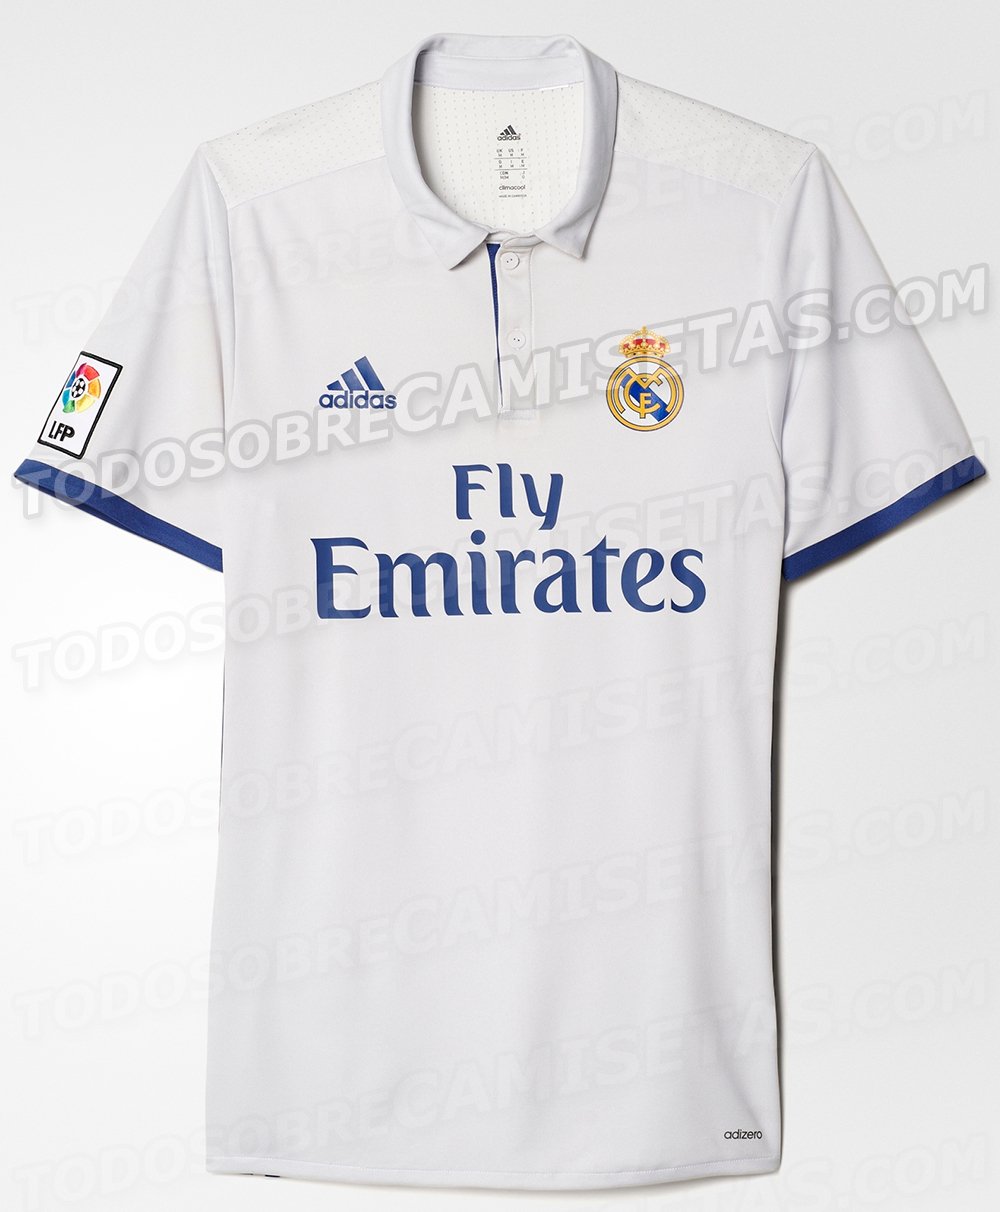 Real-Madrid-16-17-adidas-new-home-kit-leaked-2.jpg